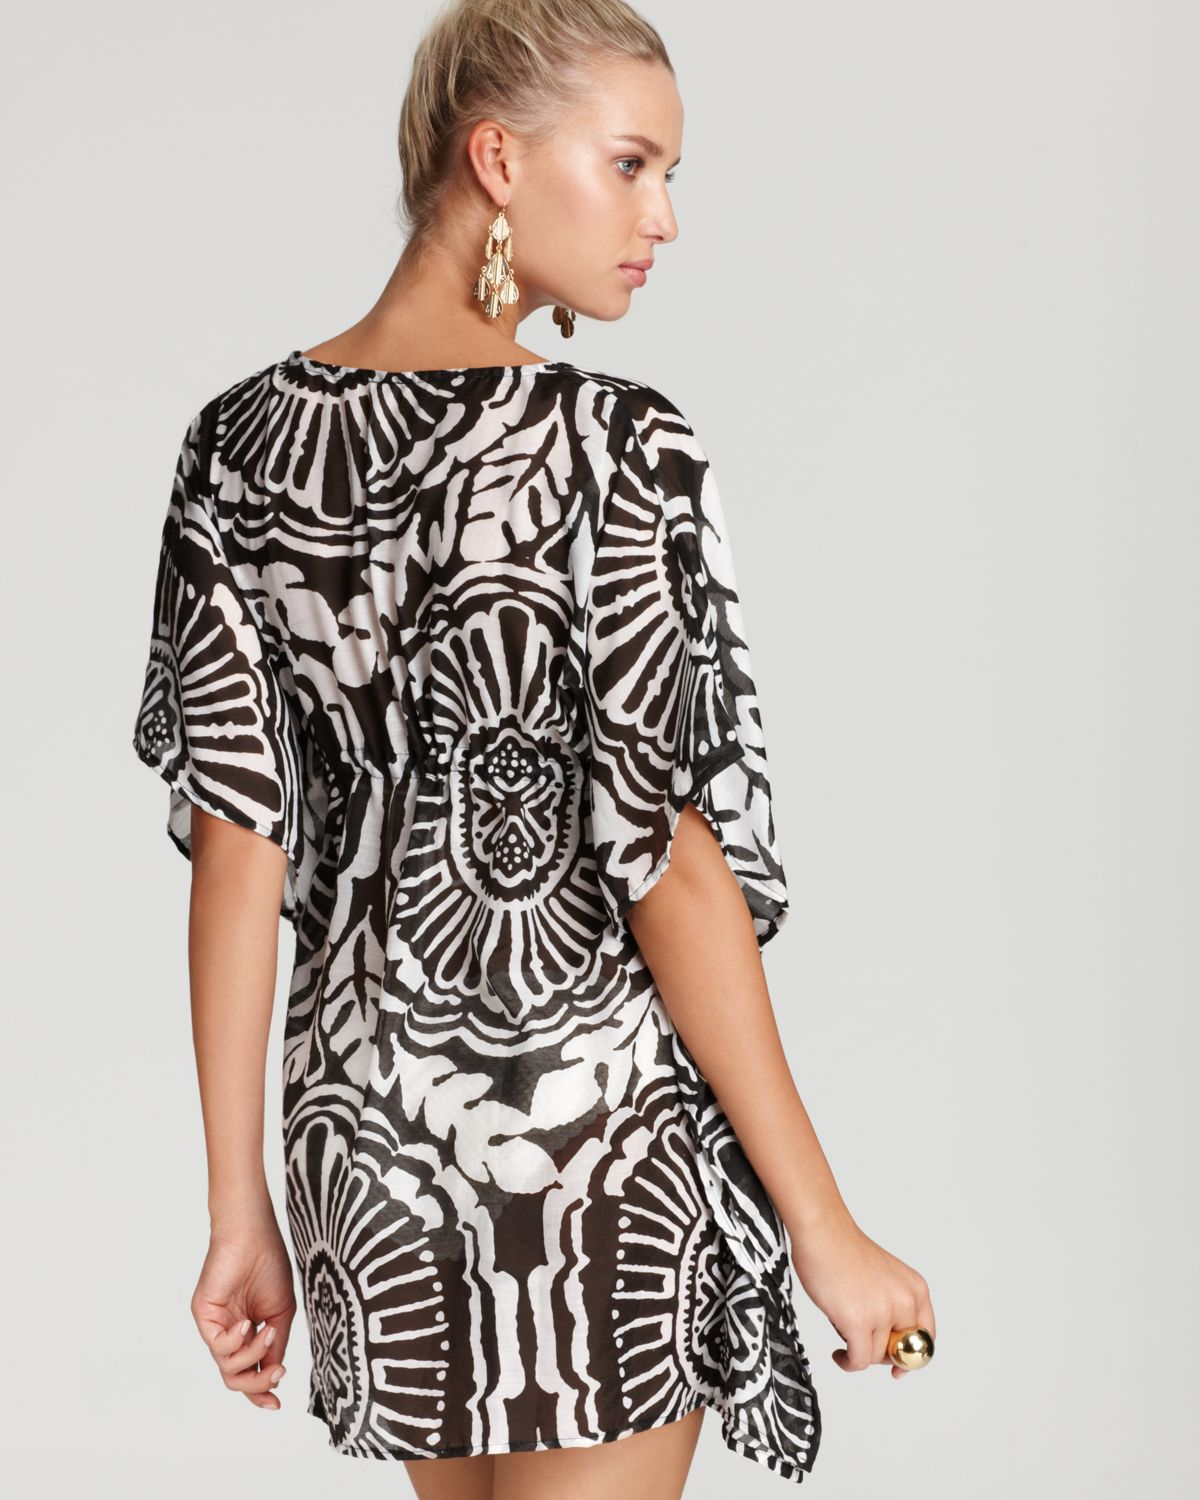 cf17c22f3e5d9 Echo Medallion Print Butterfly Swimsuit Cover Up in Black - Lyst